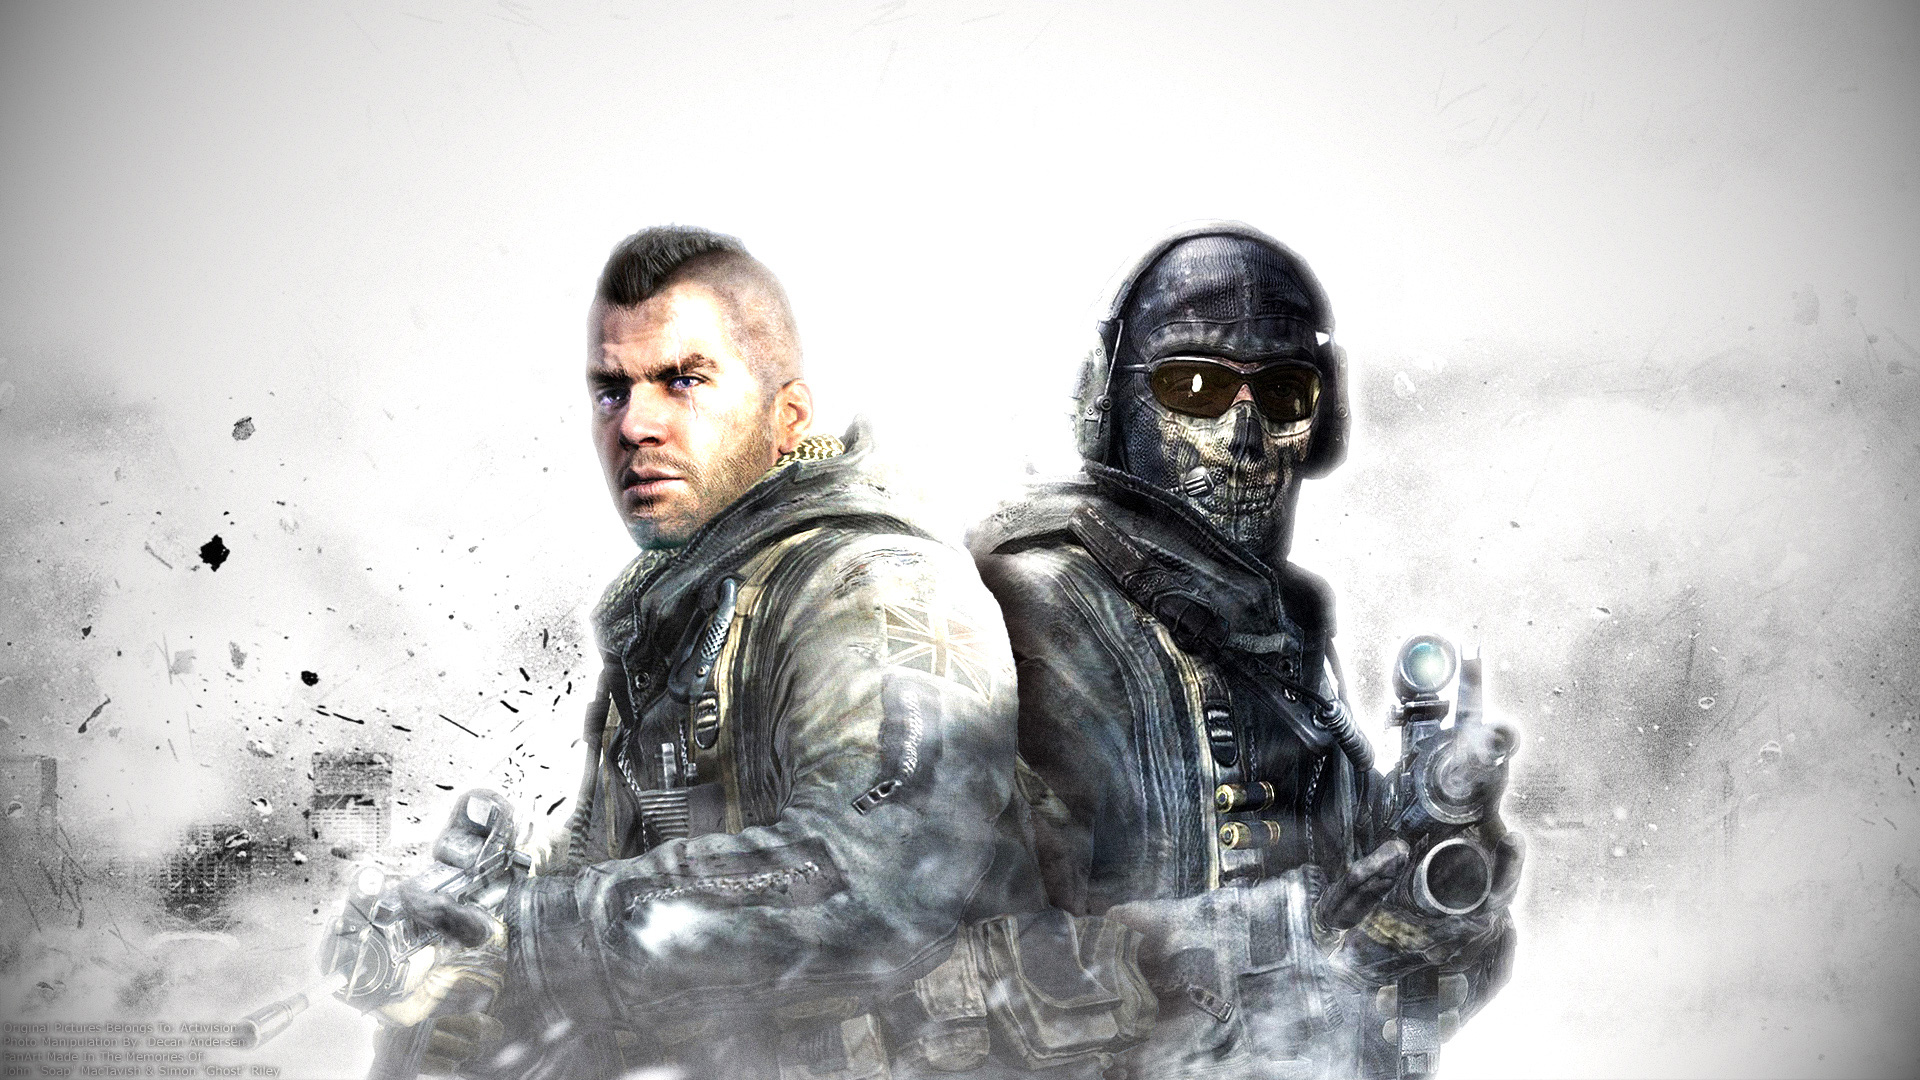 Free download Ghosts Wallpaper Call of Duty Ghost HD